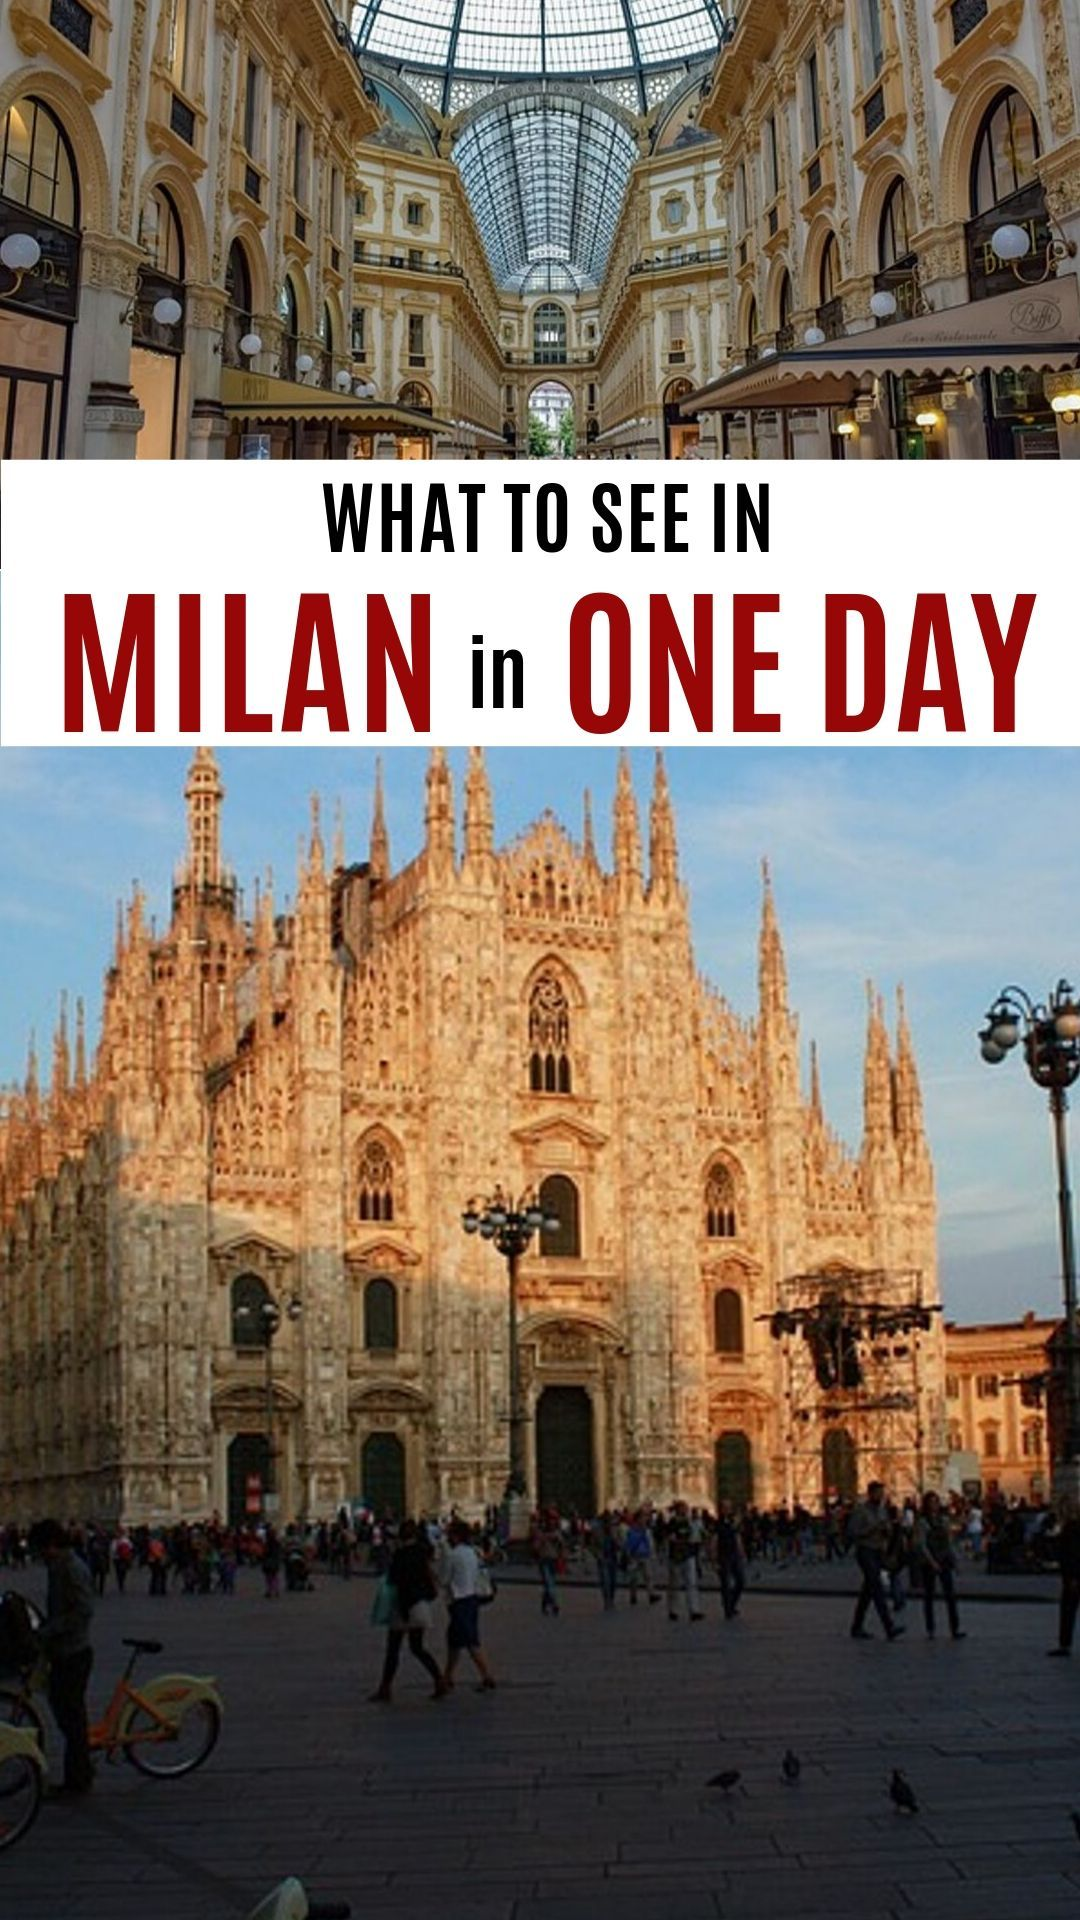 What can you see in Milan in one day? See Milan's most famous sites, taste Milan's glorious food and go shopping all in the same day with our FREE guide to a day in Milano #Italy #Travel #Milan #Milano